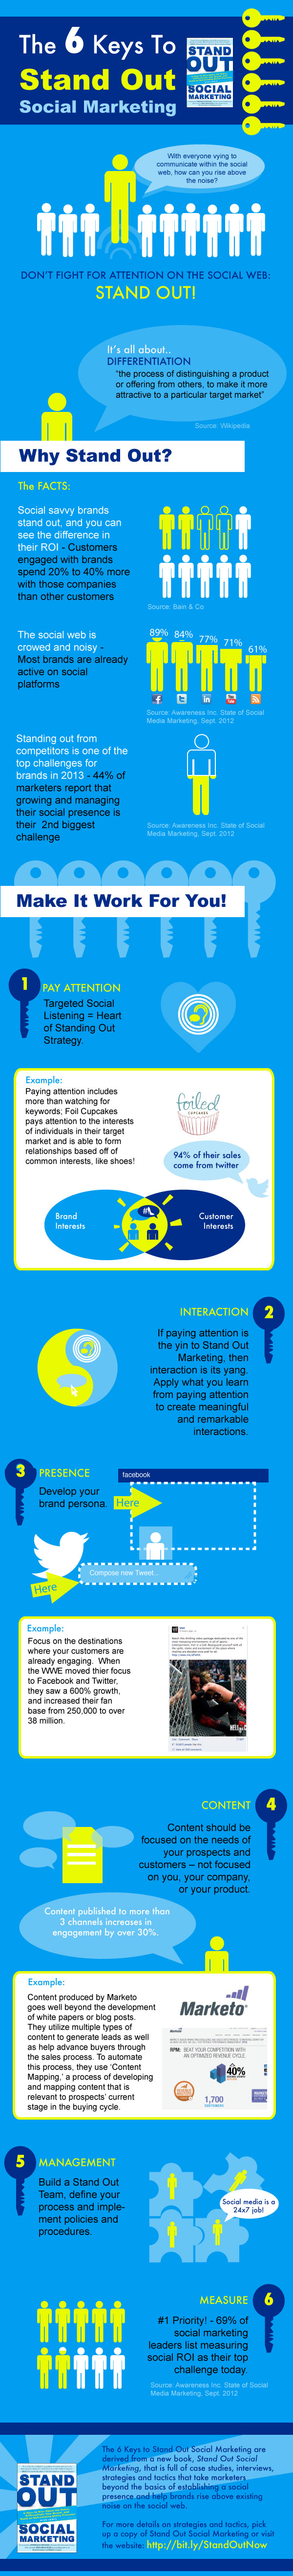 Stand out Social Marketing-Infographic